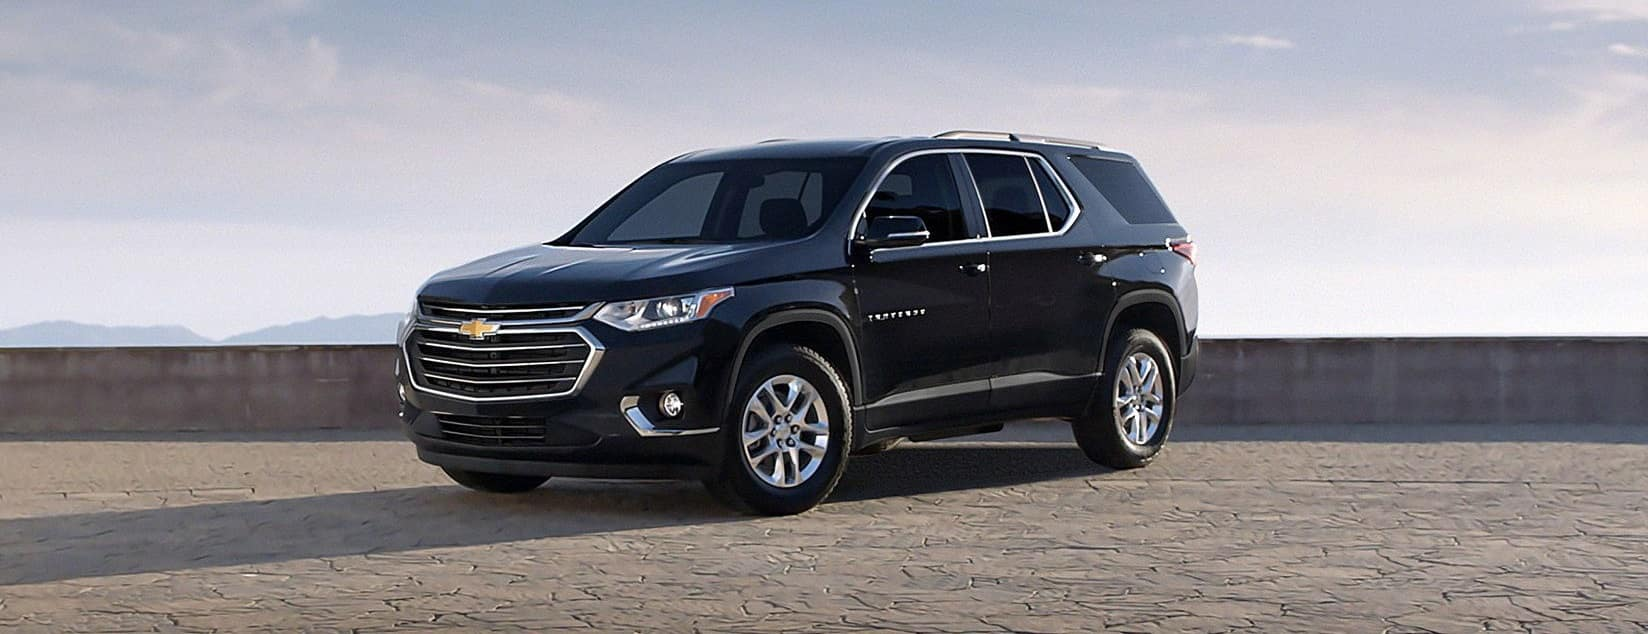 2019 Chevrolet Traverse outdoors